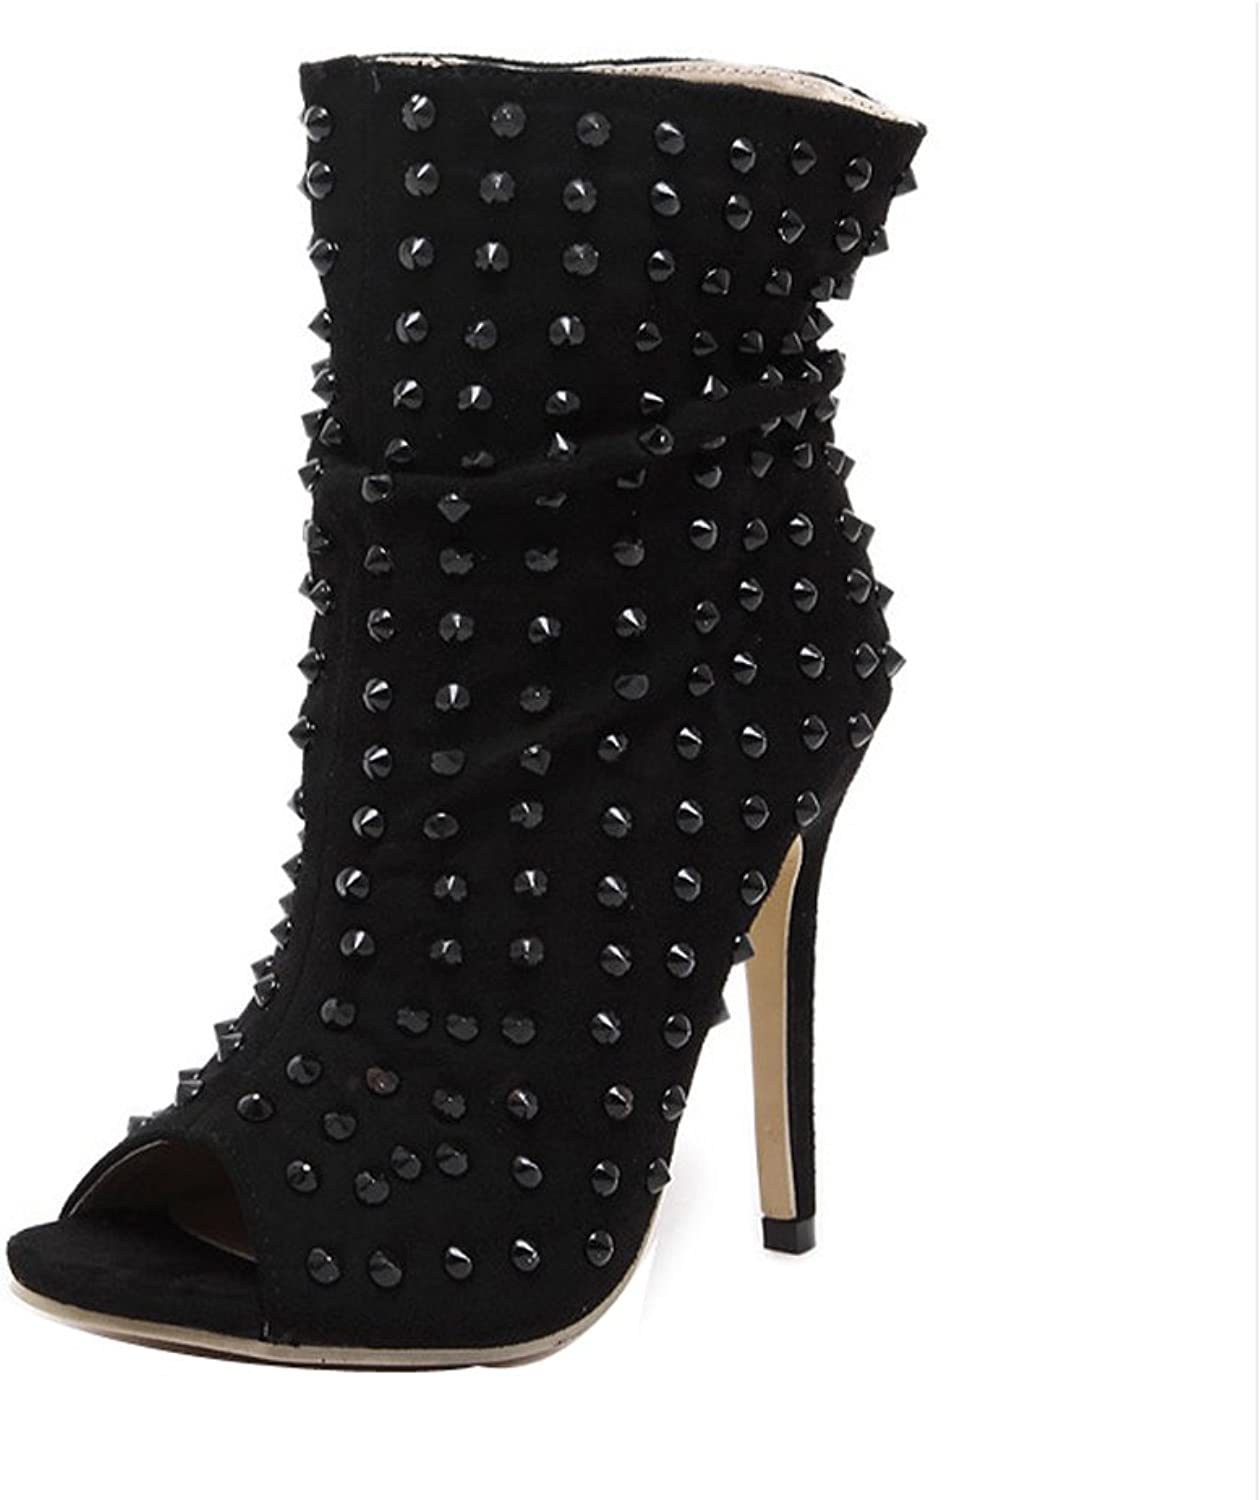 Ladola Womens Studded Peep-Toe Suede Boots